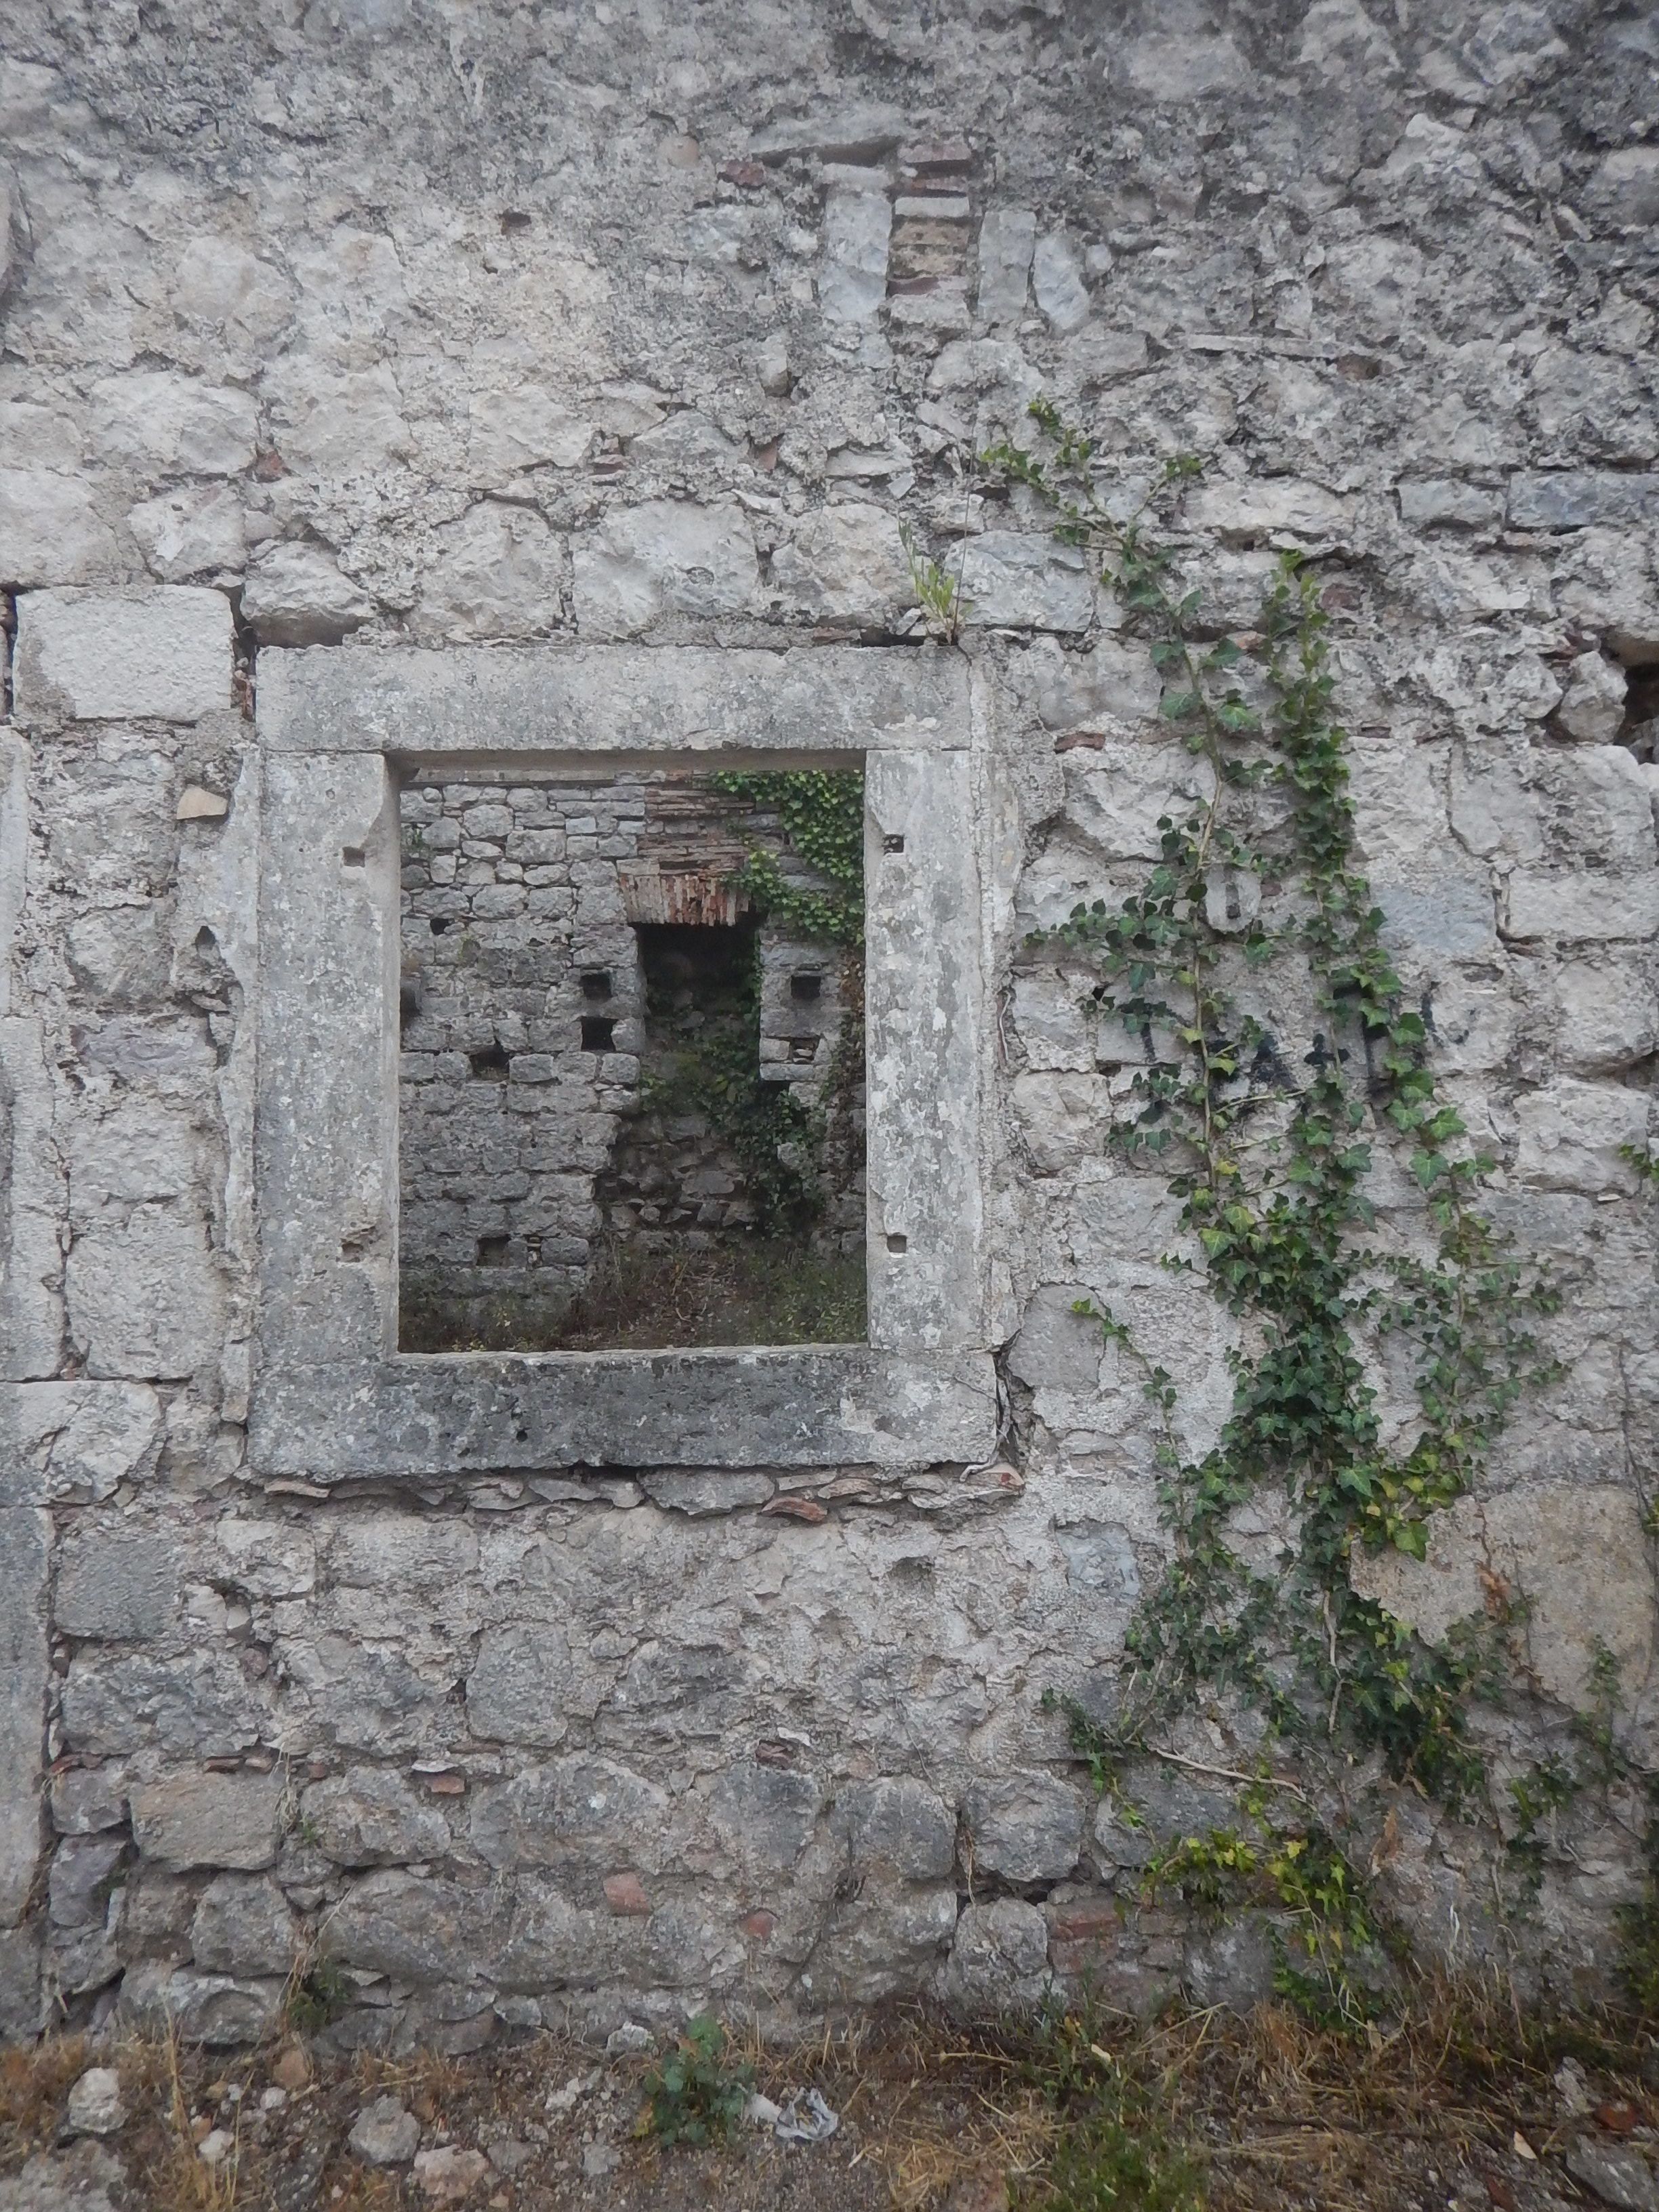 Some window details from San Giovanni's Castle.